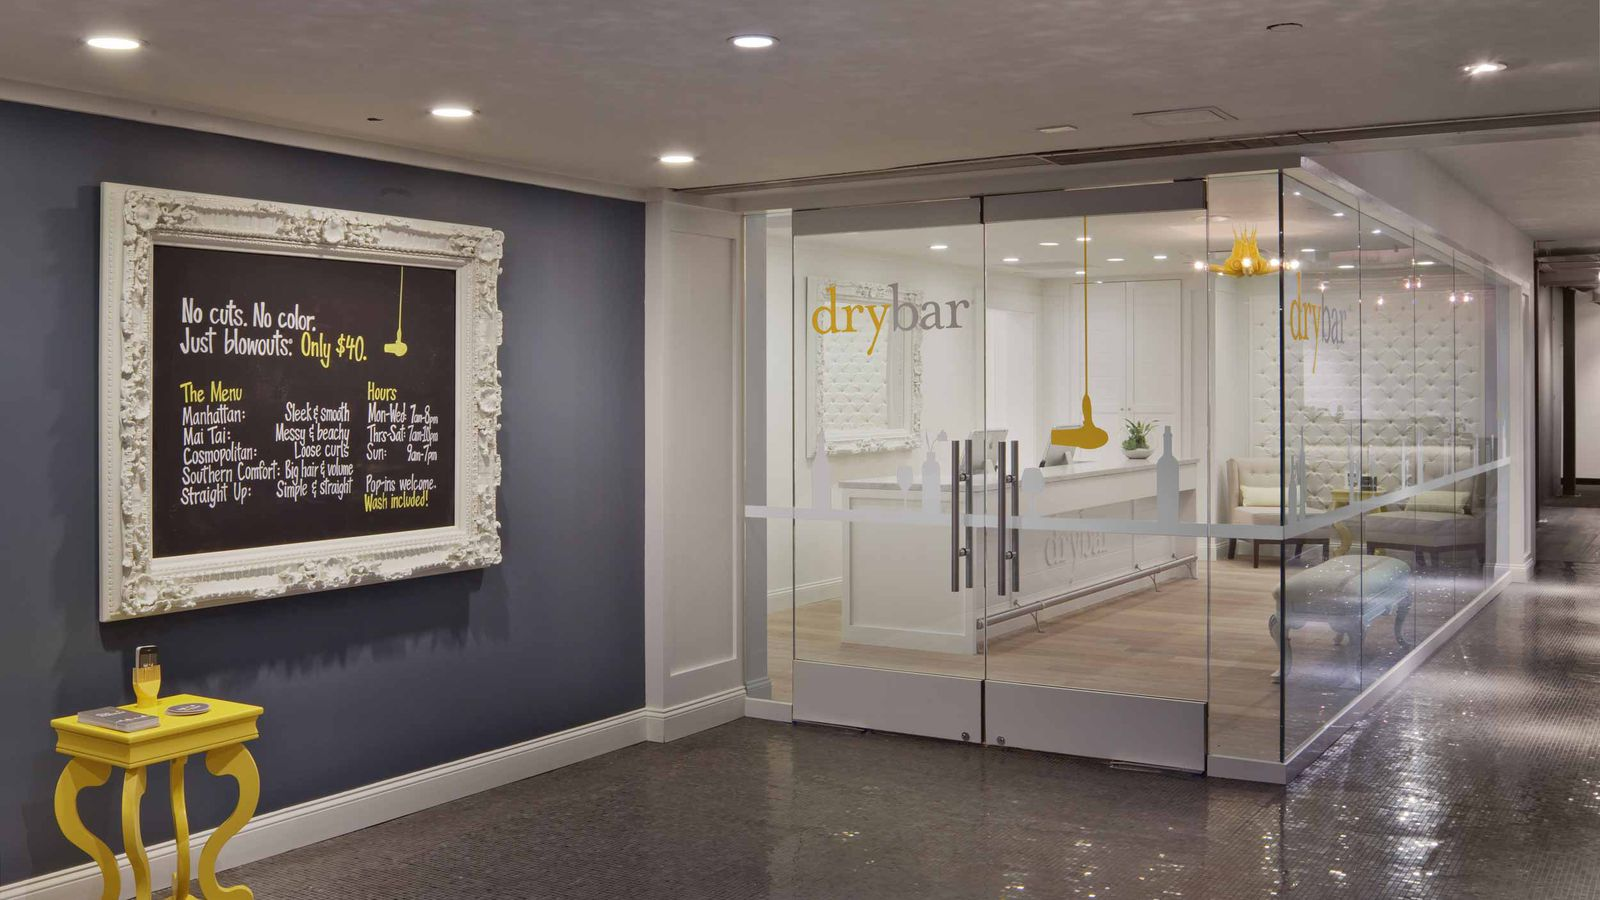 drybar will have a dozen nyc locations by the end of this year